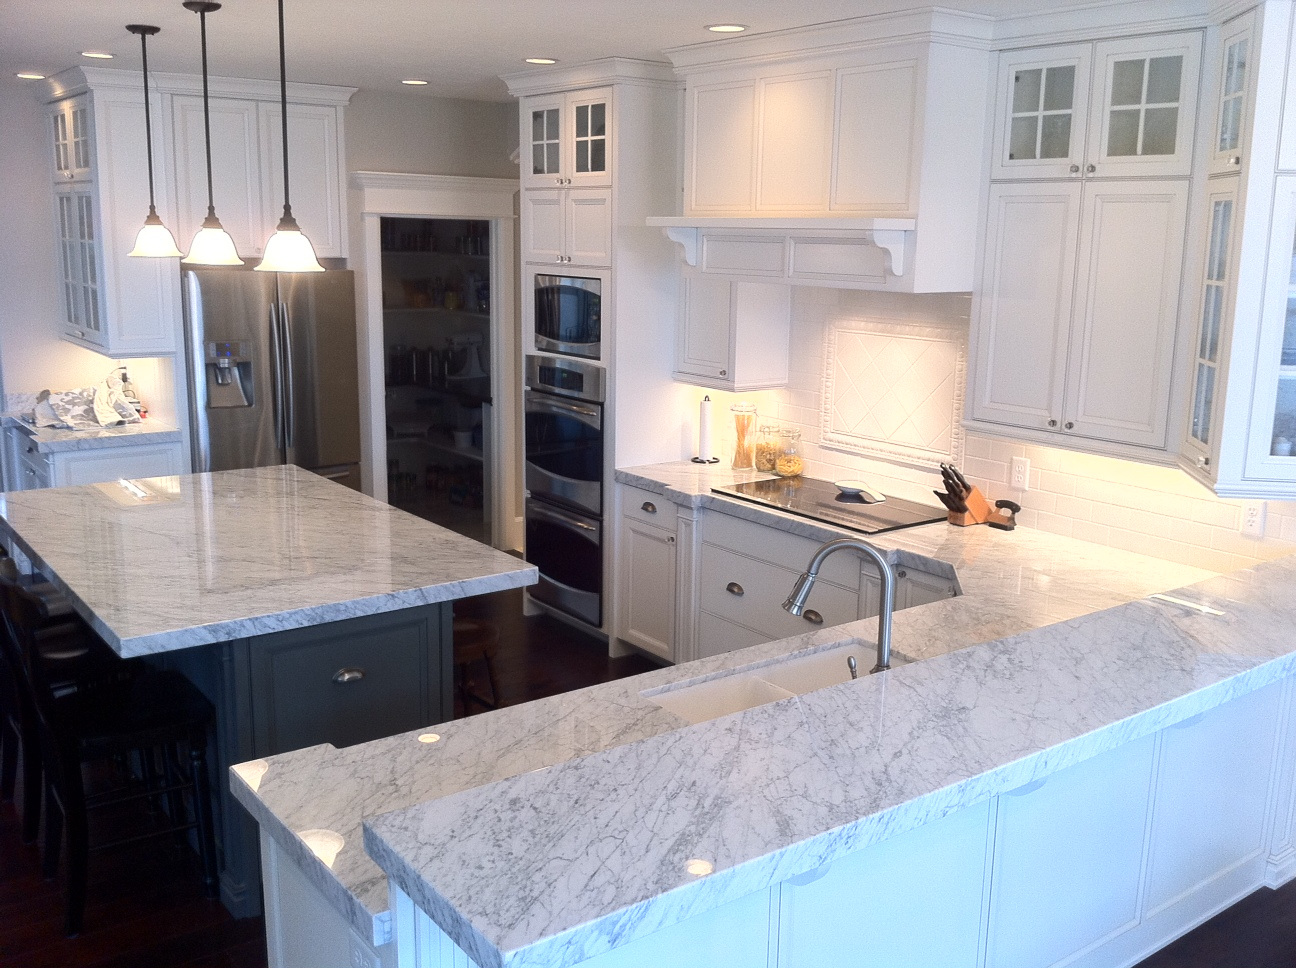 The granite gurus carrara marble kitchen from mgs by design - Kitchen design marble countertops ...